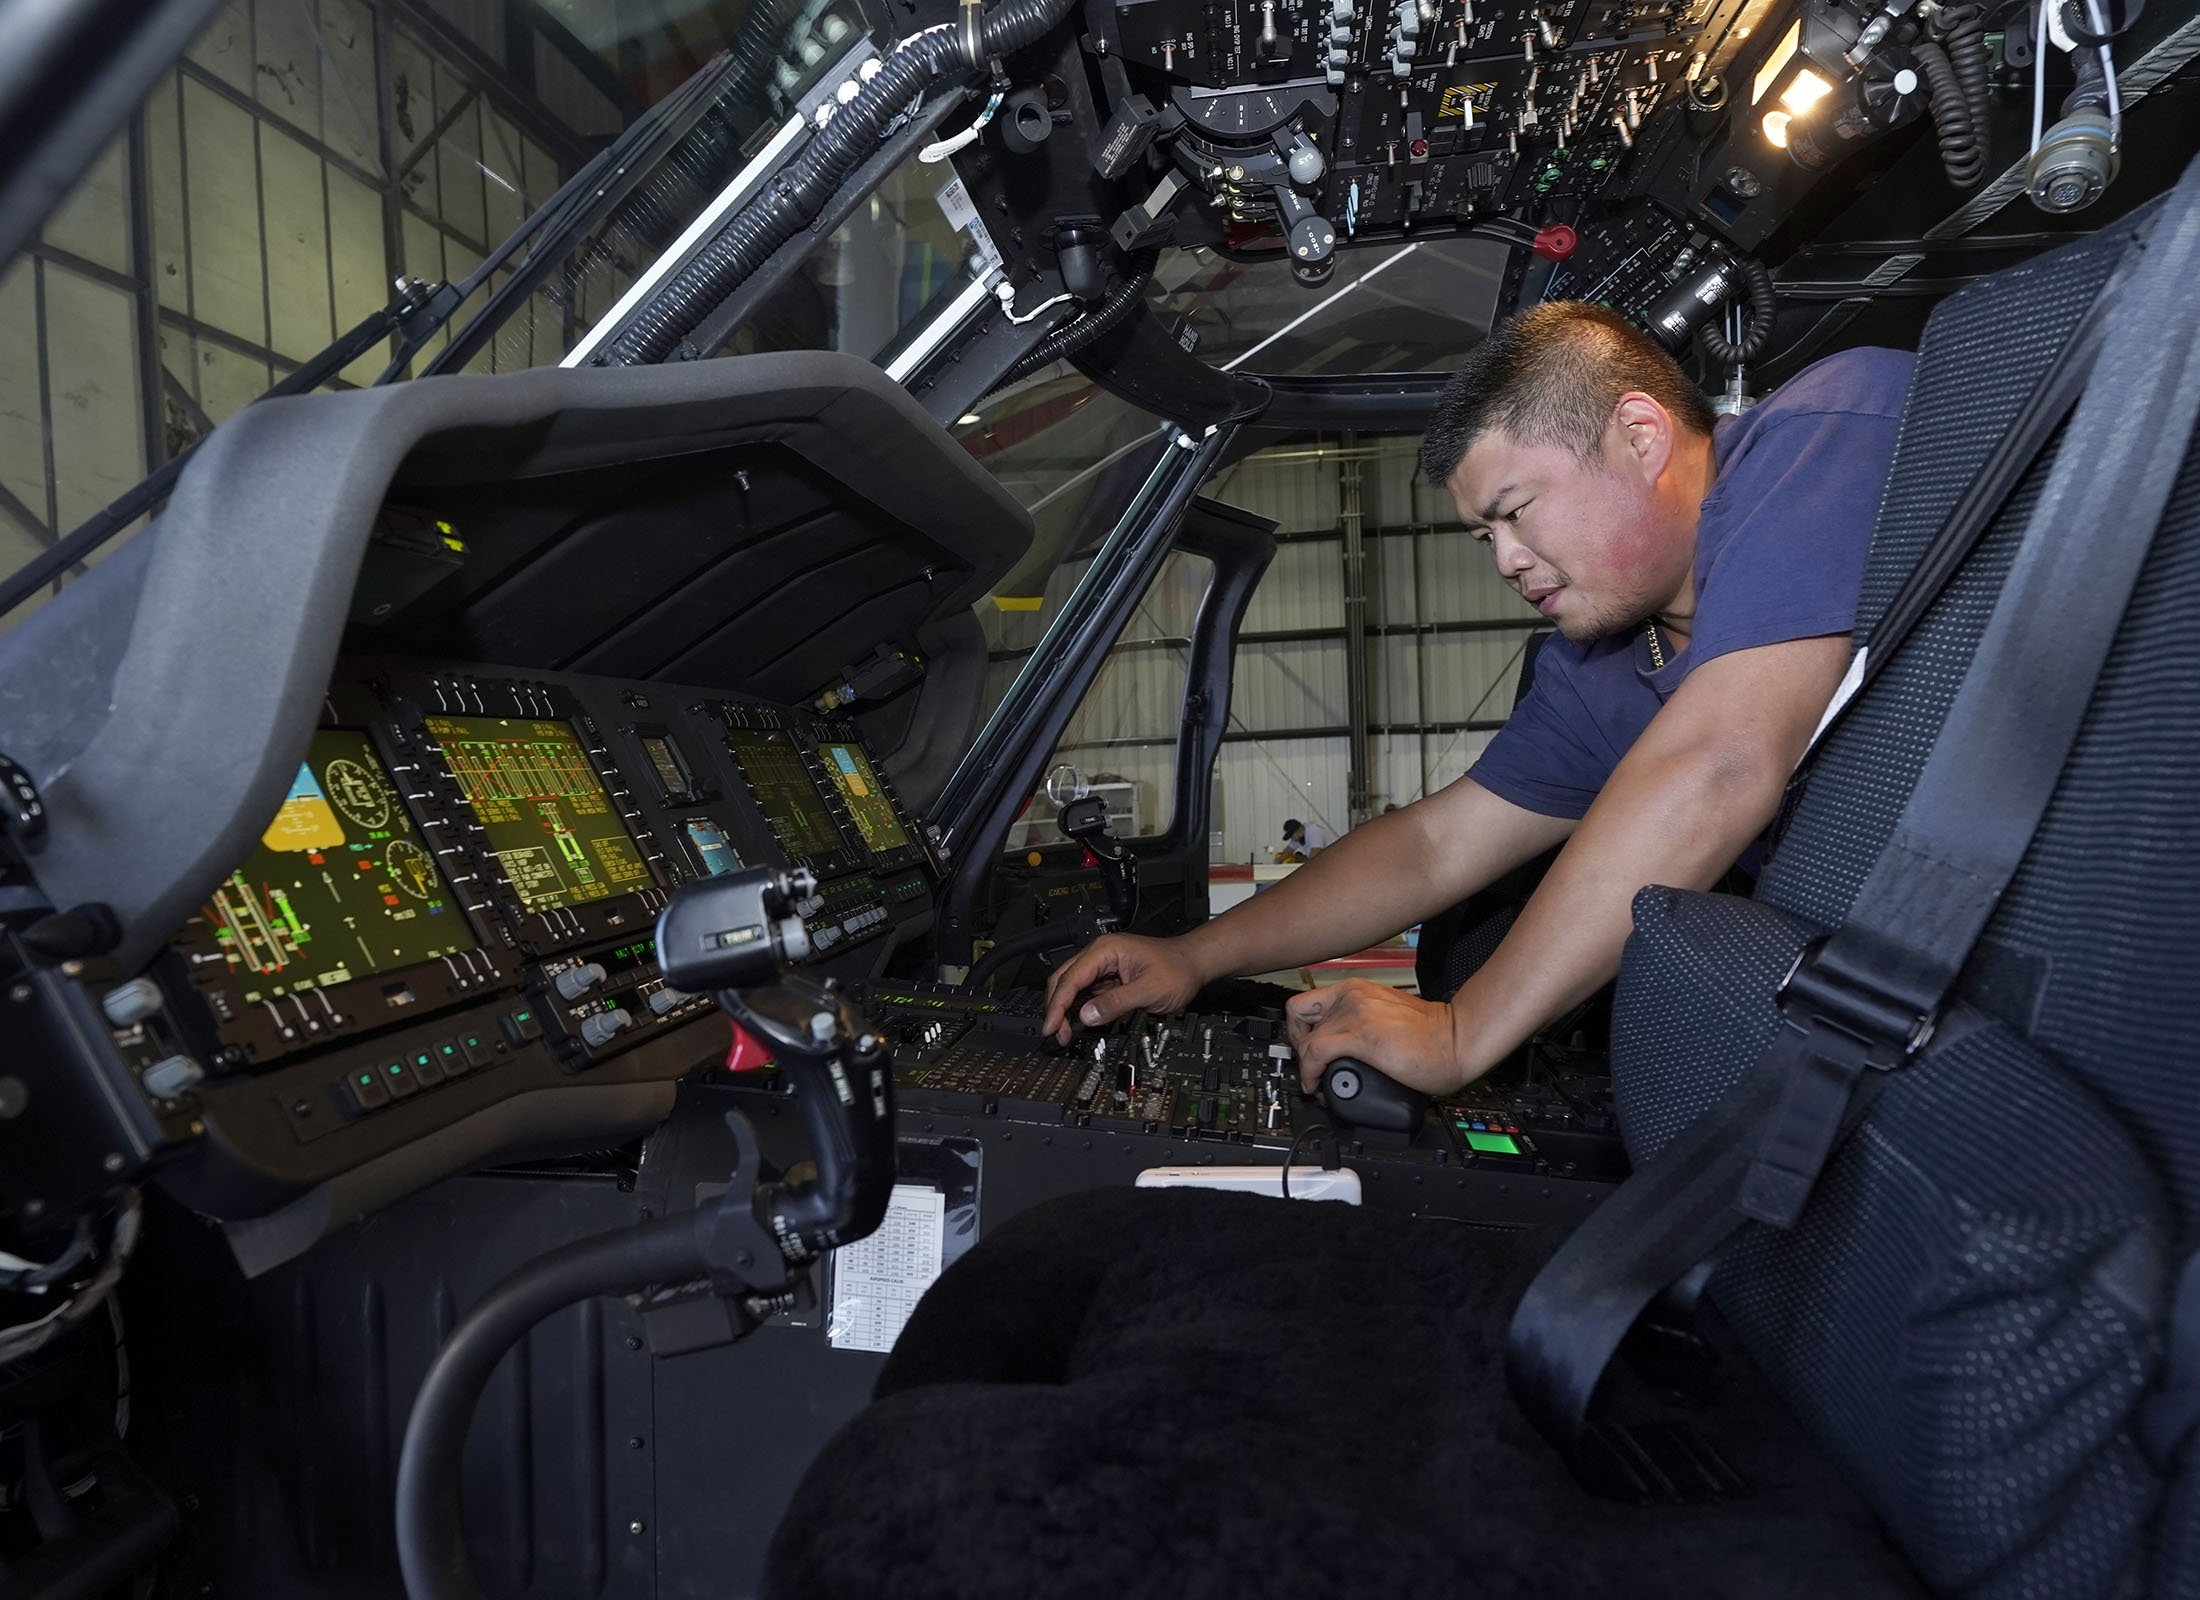 Avionics mechanic Mike Luong inspects the control panel of Sikorsky Firehawk helicopter at McClellan Airpark in Sacramento, California, U.S., July 23, 2021. (AP Photo)